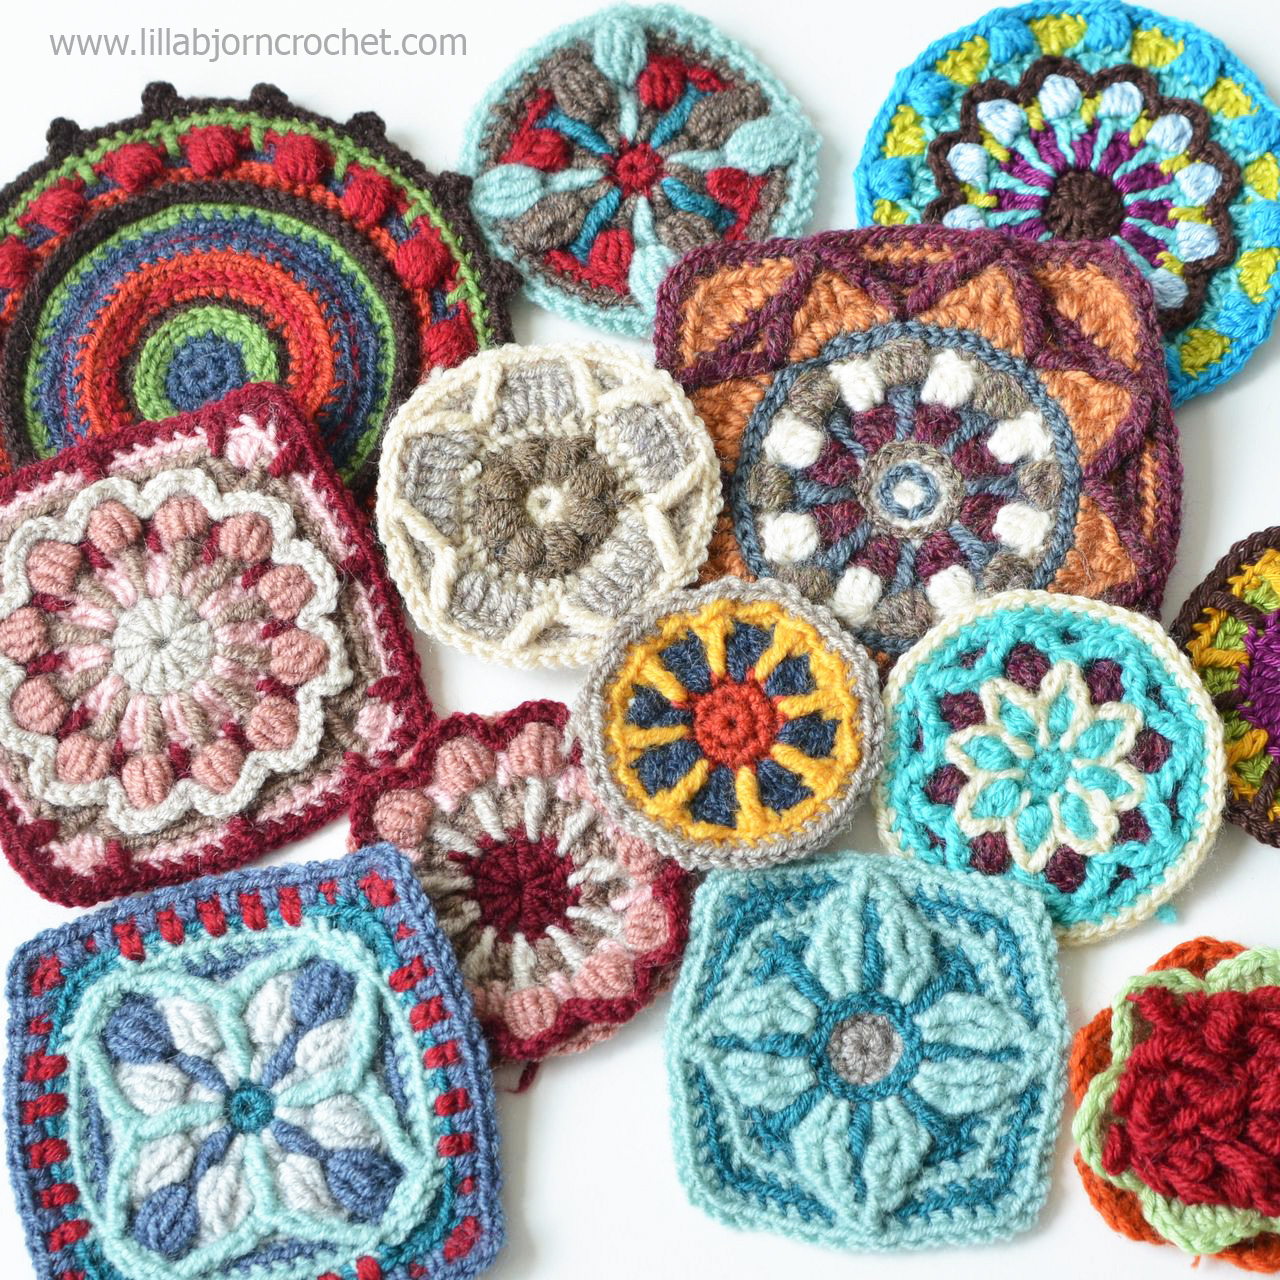 Overlay crochet motifs and mandala by Lilla Bjorn Crochet (lillabjorncrochet.com)